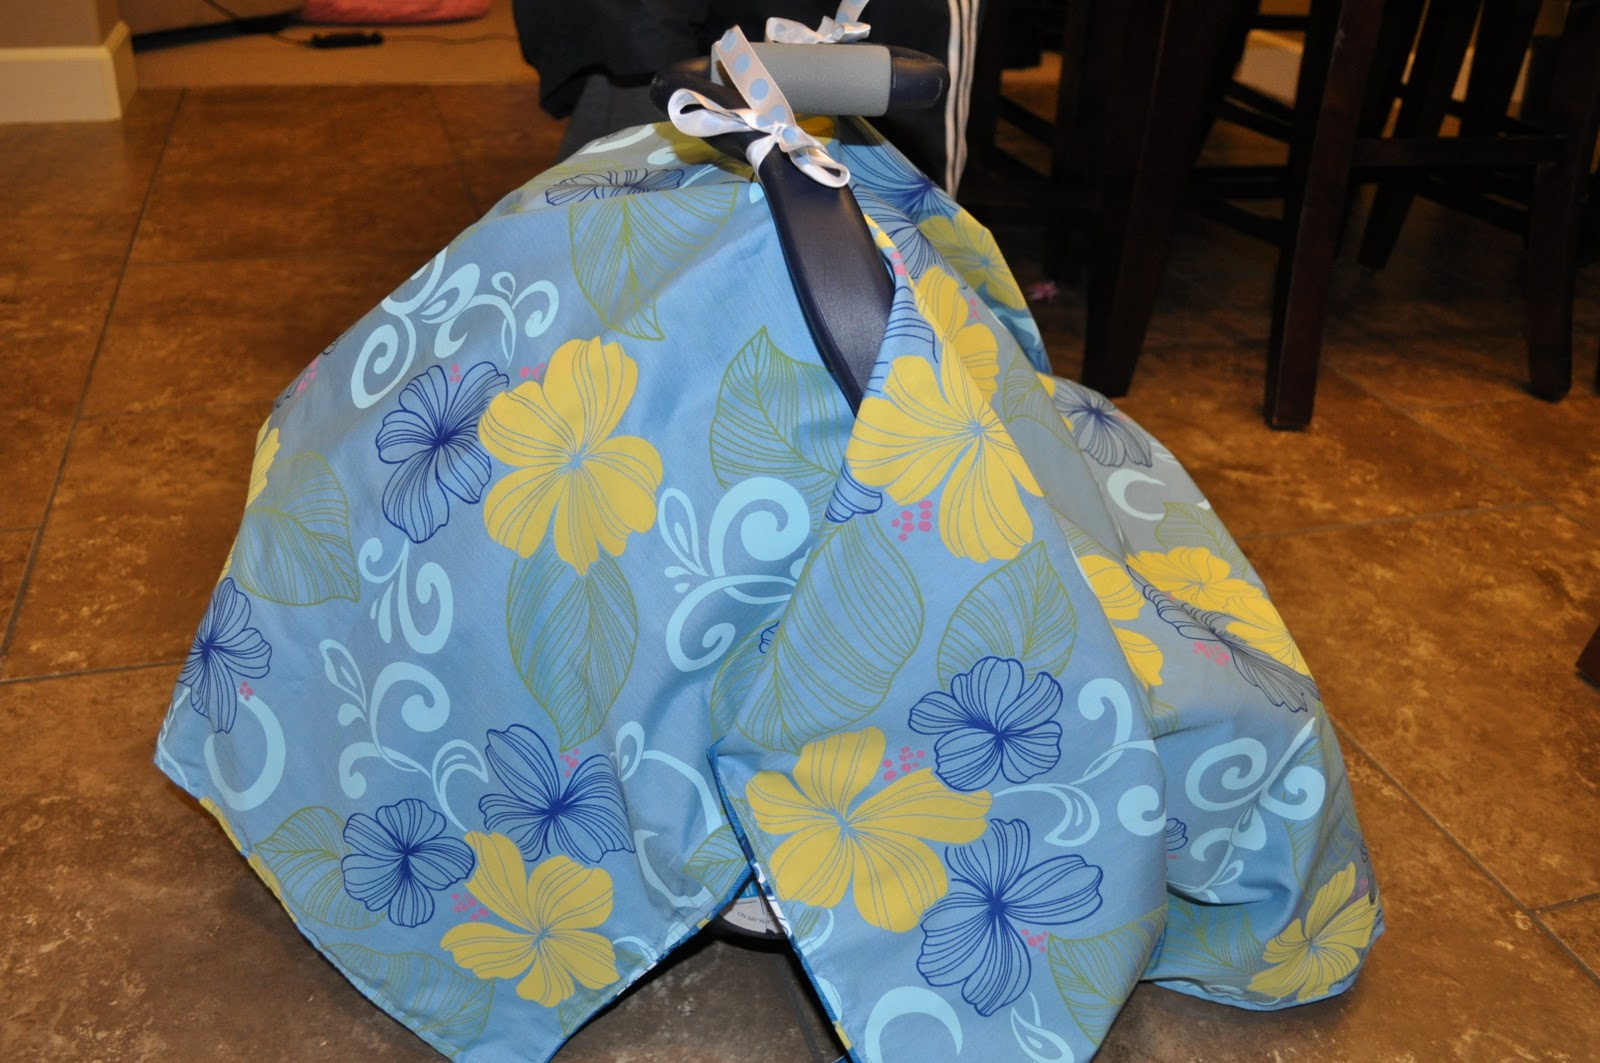 Making A Baby Car Seat Cover How To Makemakingsewing An Infant Car